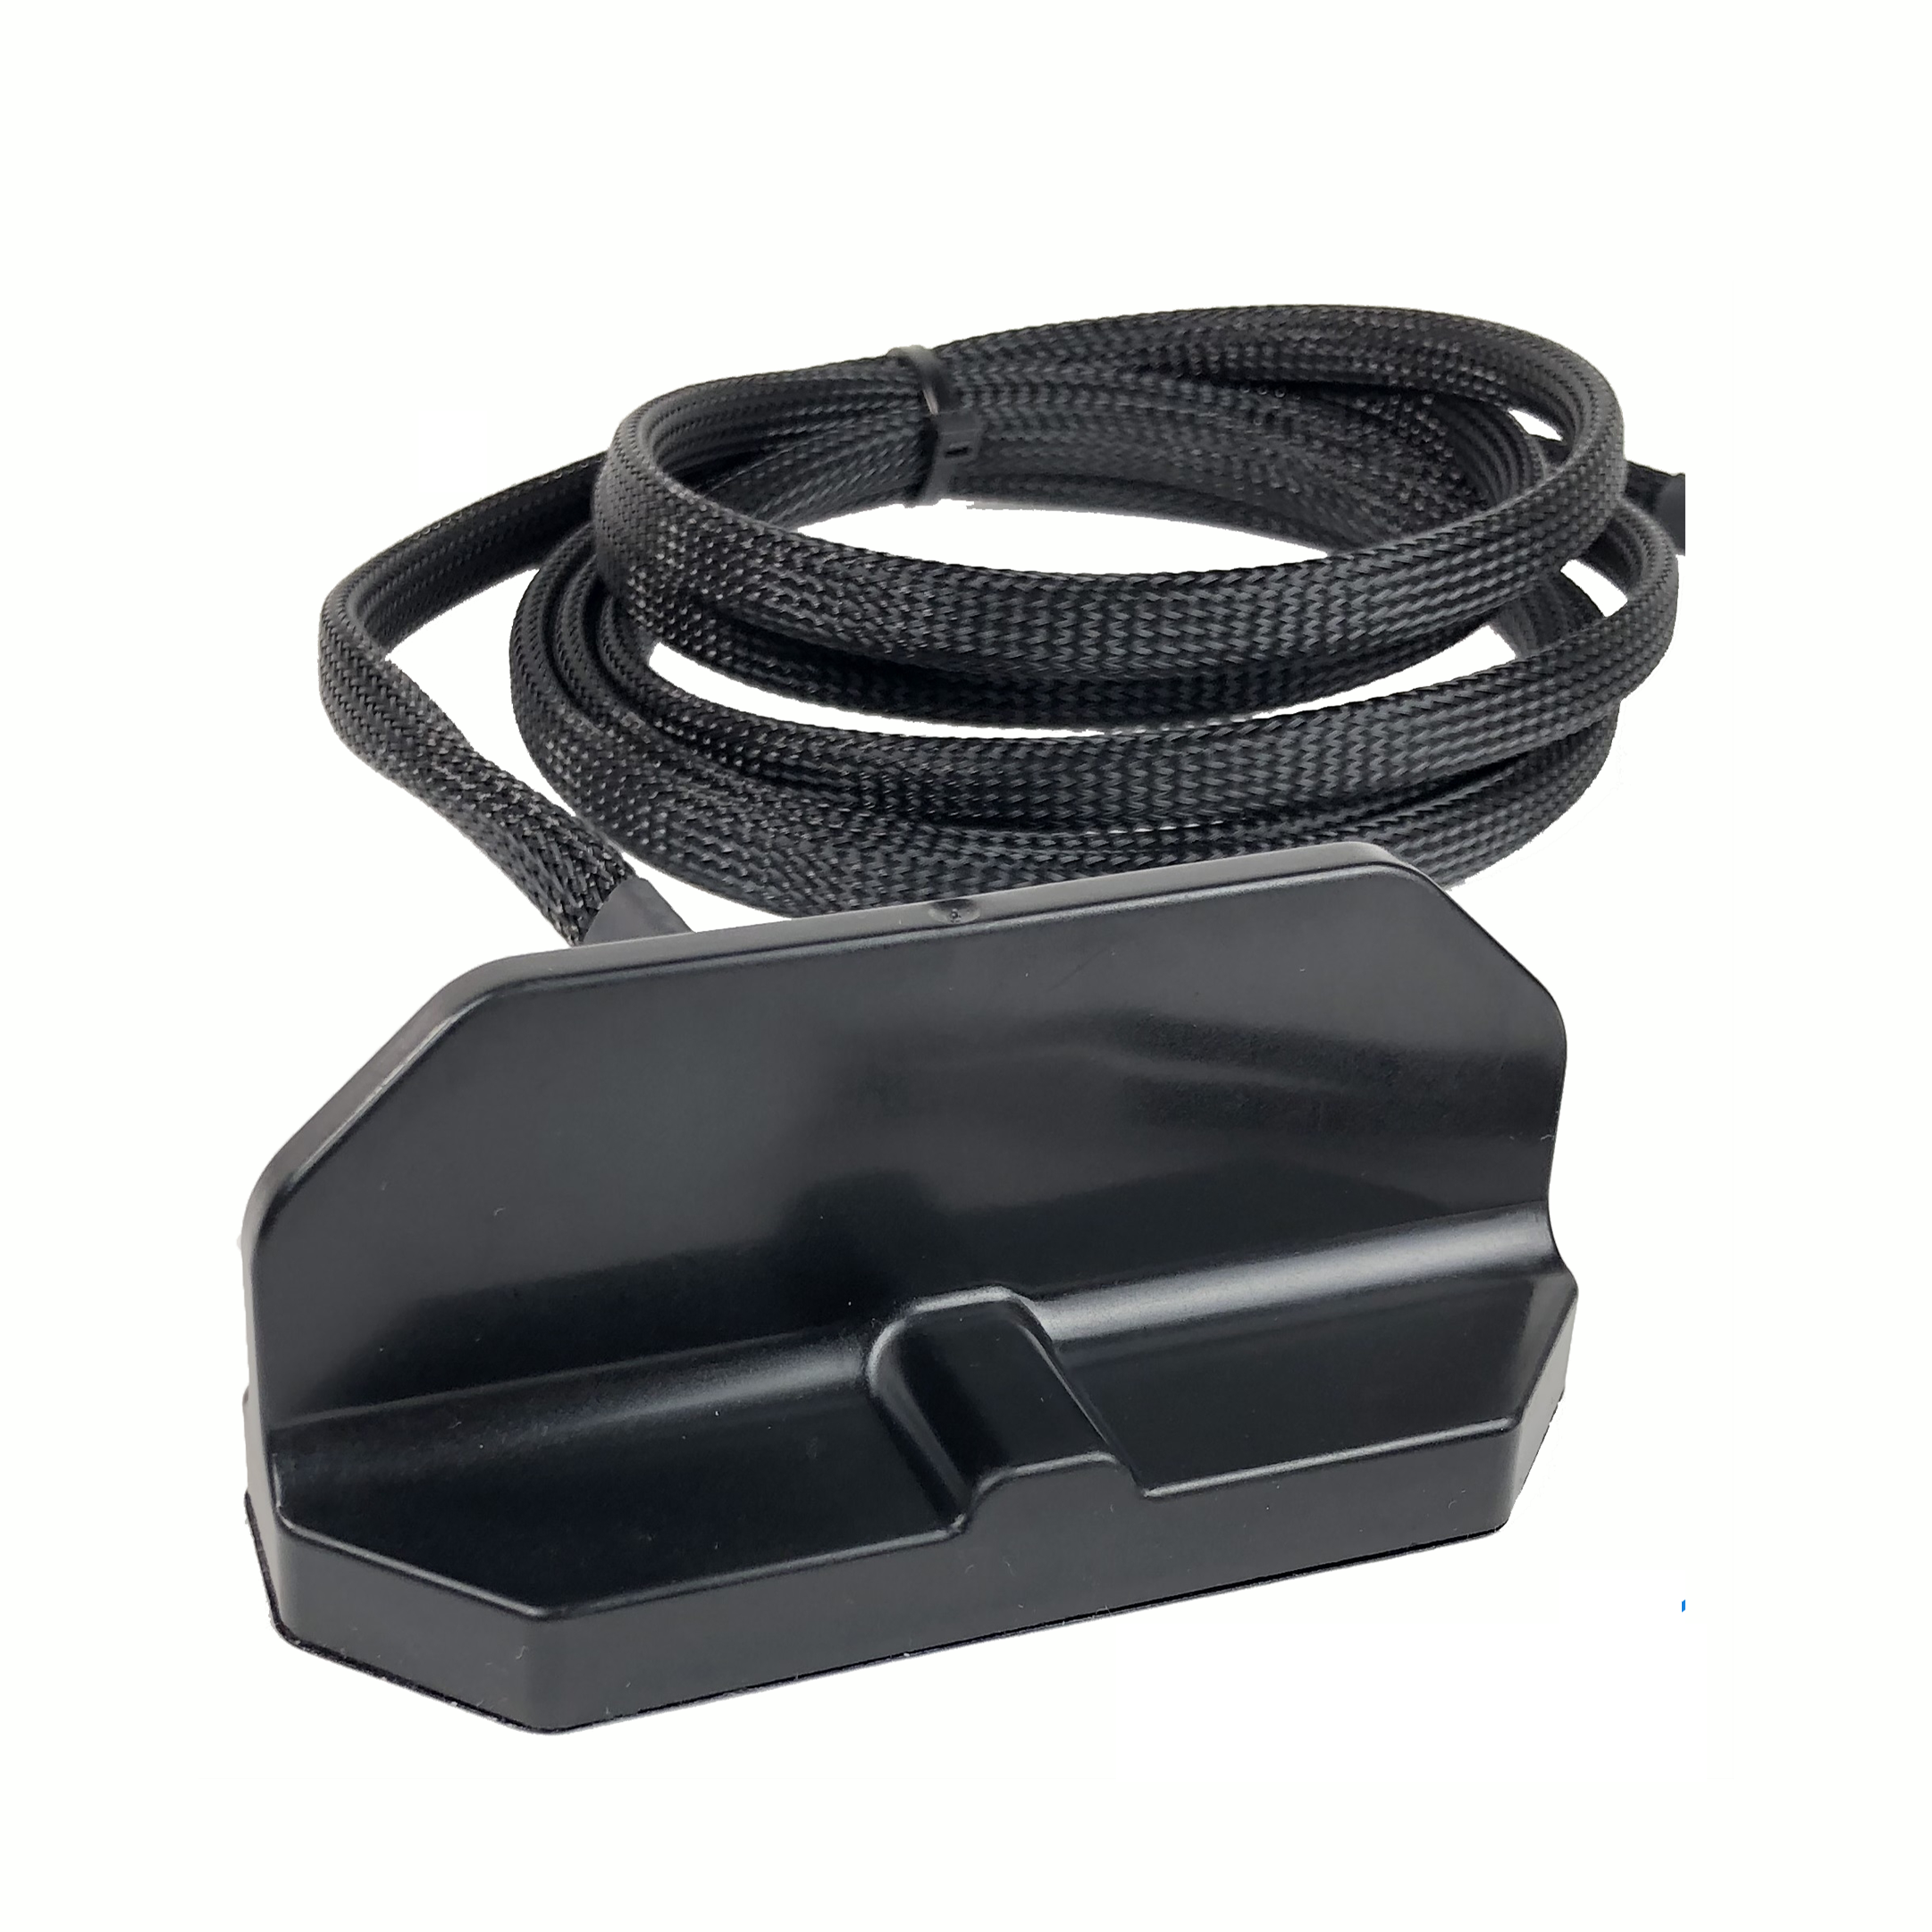 AP-M2M1-W-M-S2-RP-BL-10: Airgain Black Thin Fin WiFi Antenna - 10 Ft Cable - Magnetic Mount - RP SMA Male